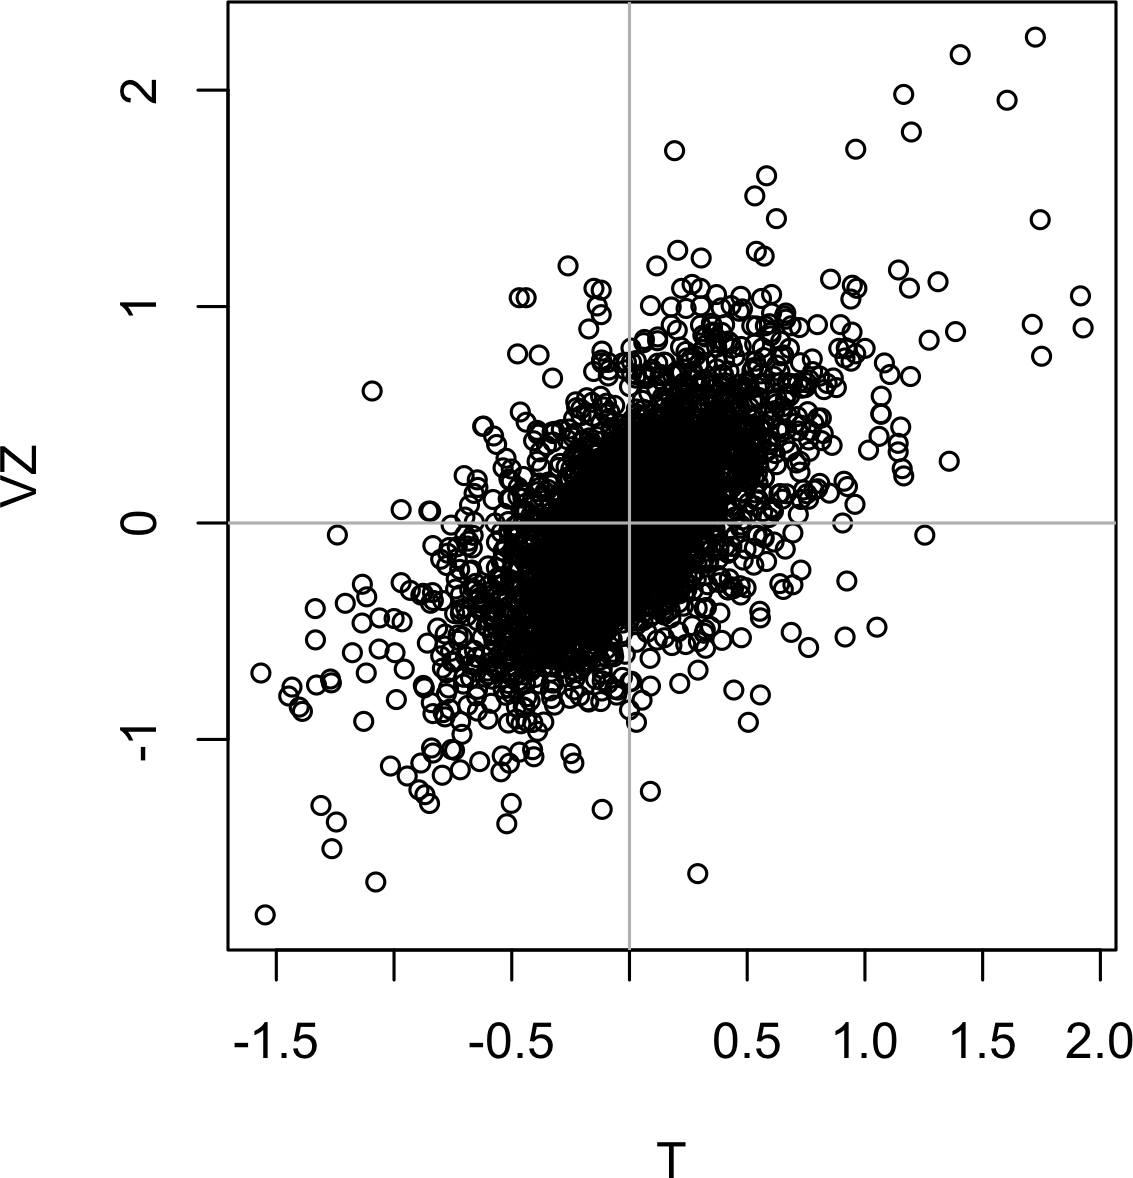 Scatterplot between returns for ATT and Verizon.